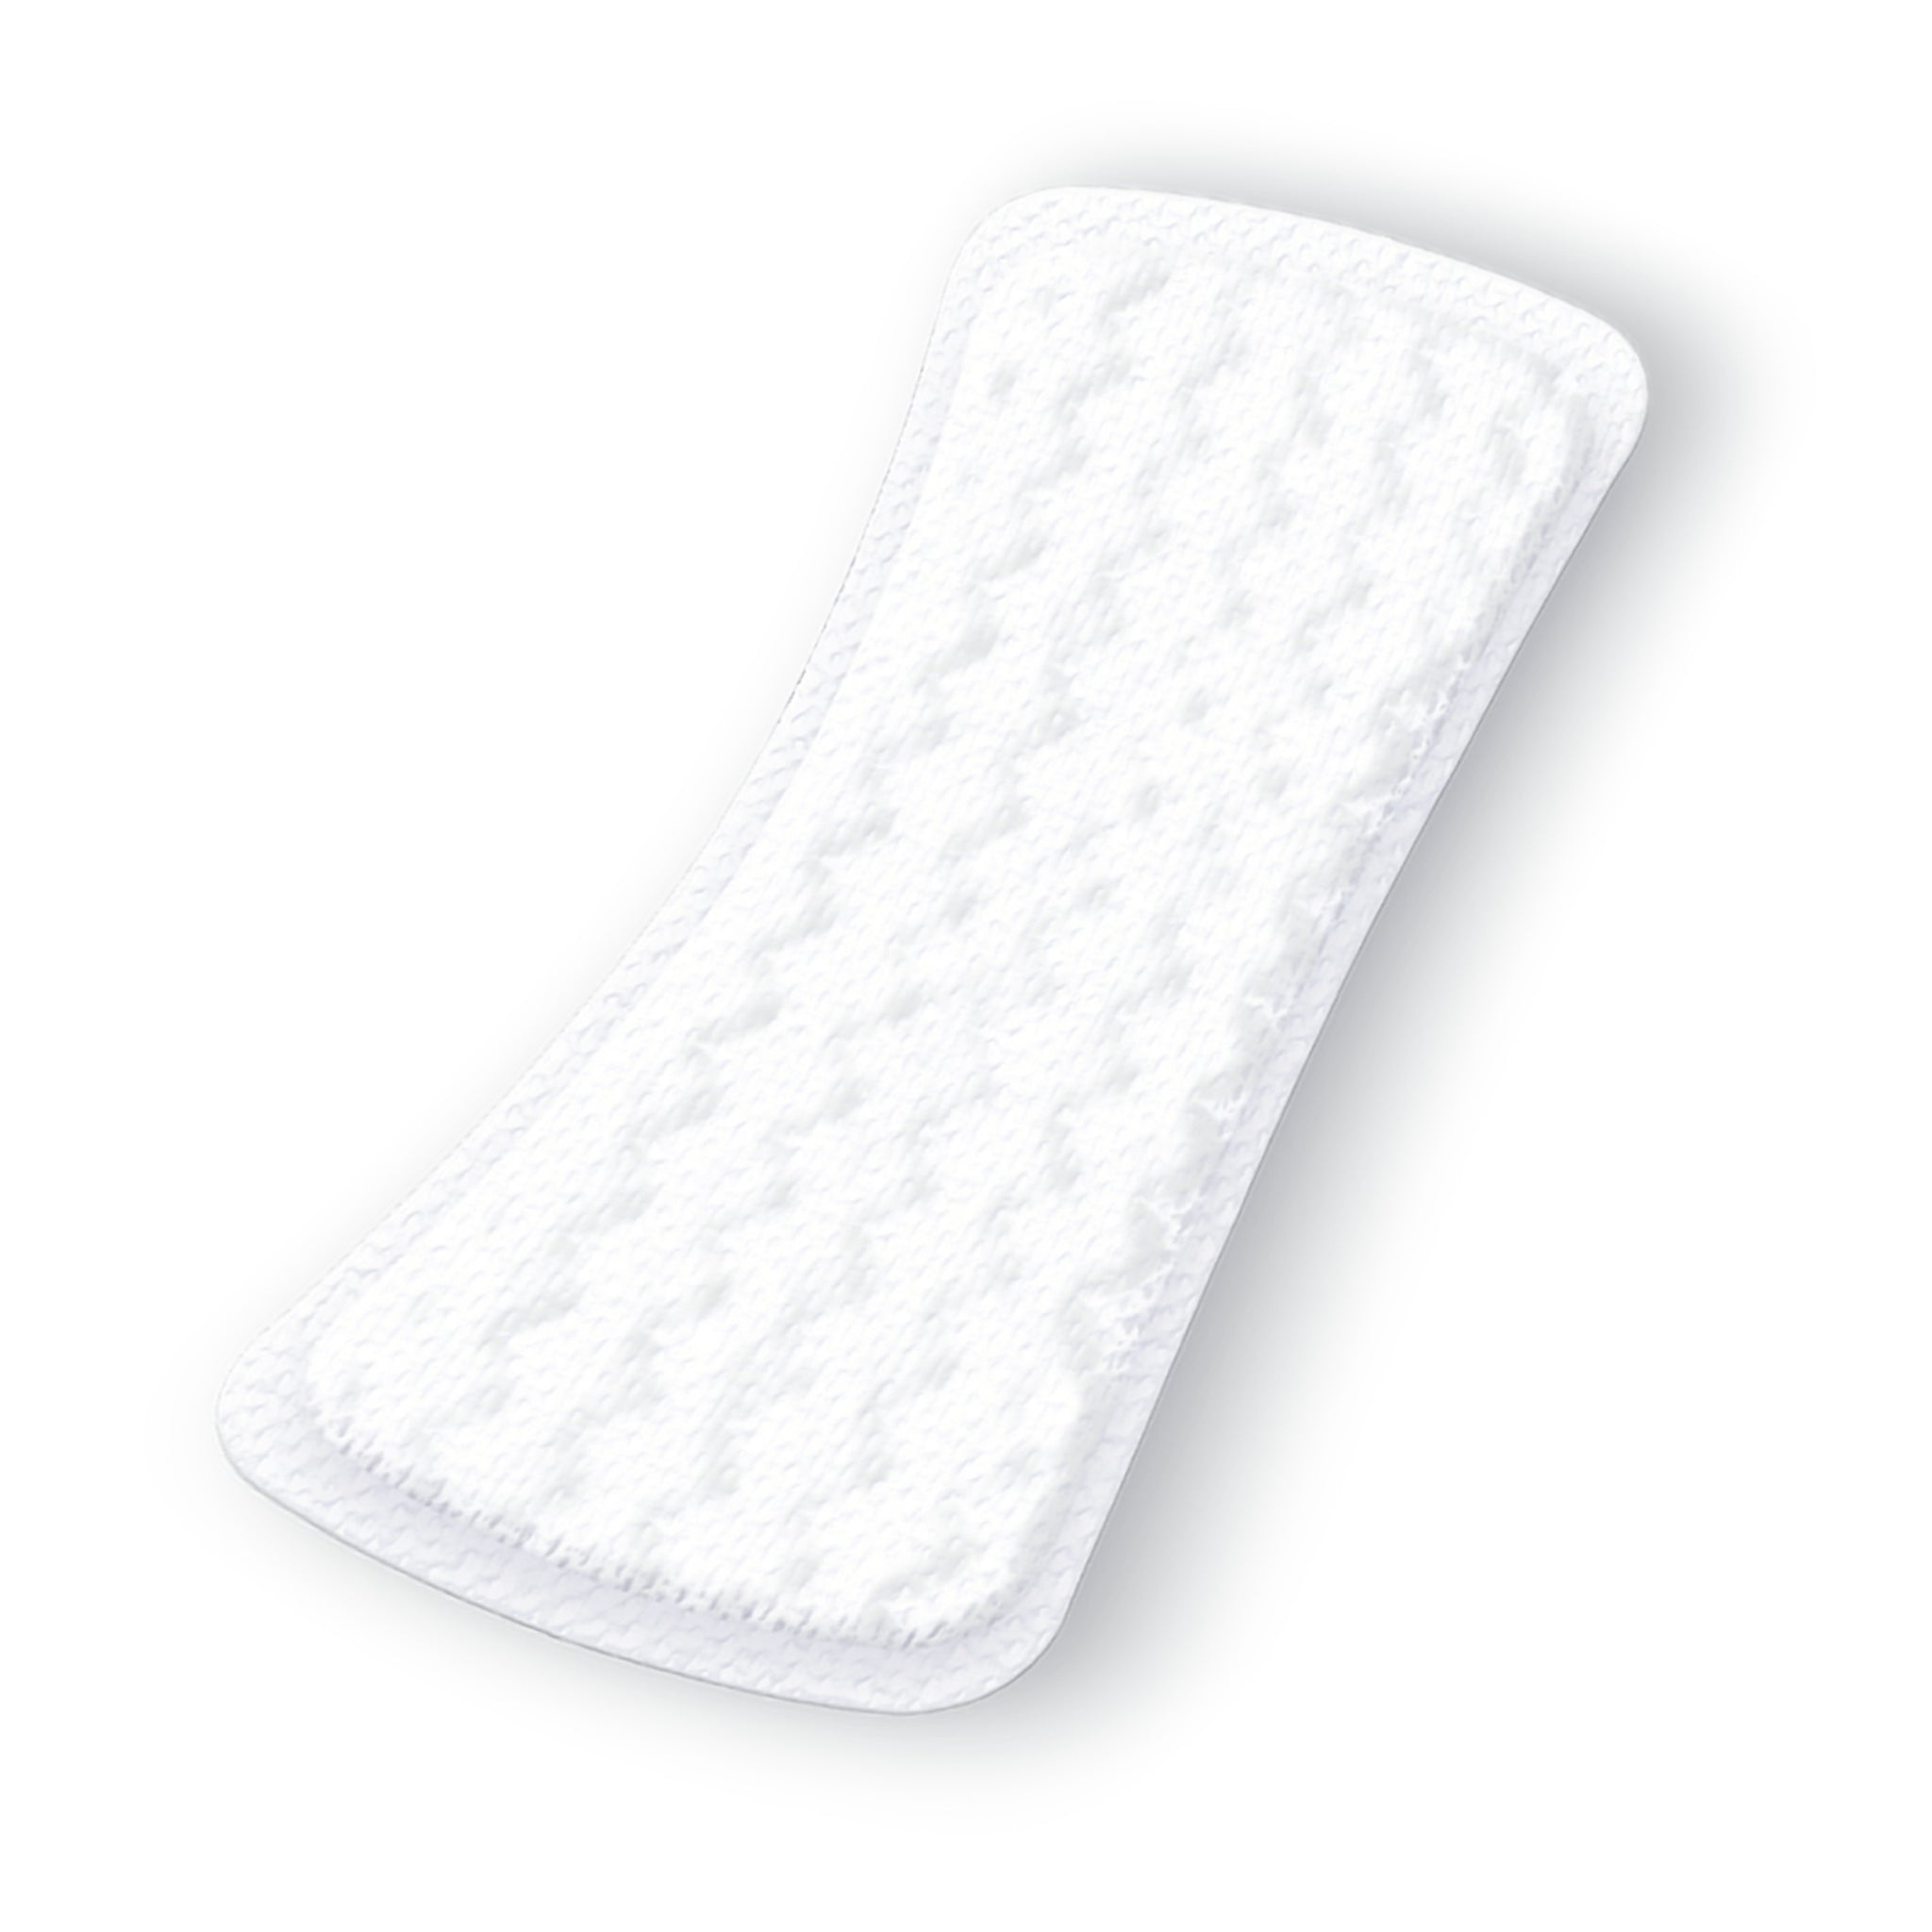 Organ(y)c Organic Cotton Panty Liners Flat Light Flow - Moderate